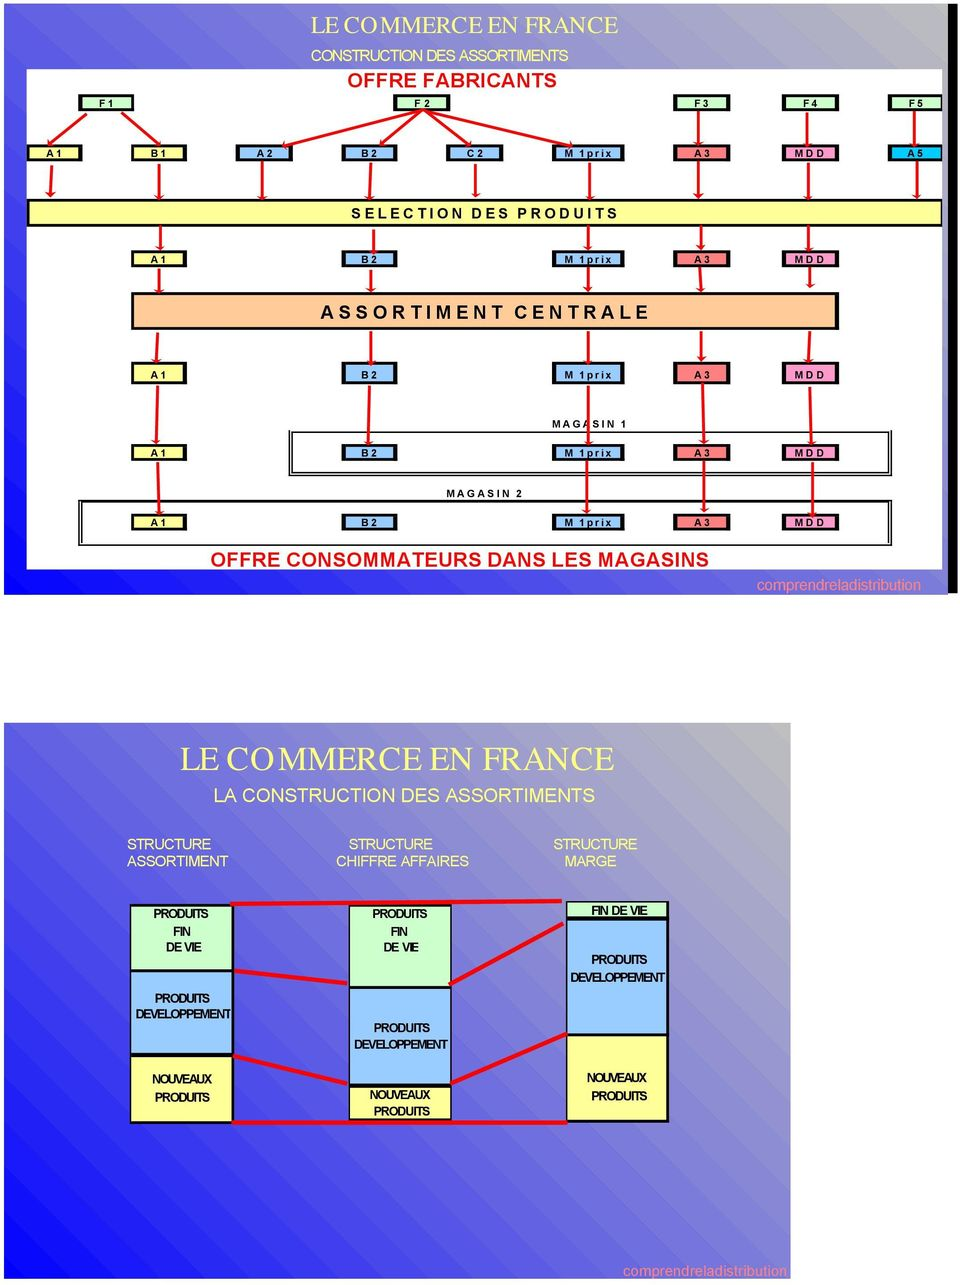 LES MAGASINS comprendreladistribution LE COMMERCE EN FRANCE LA CONSTRUCTION DES ASSORTIMENTS STRUCTURE STRUCTURE STRUCTURE ASSORTIMENT